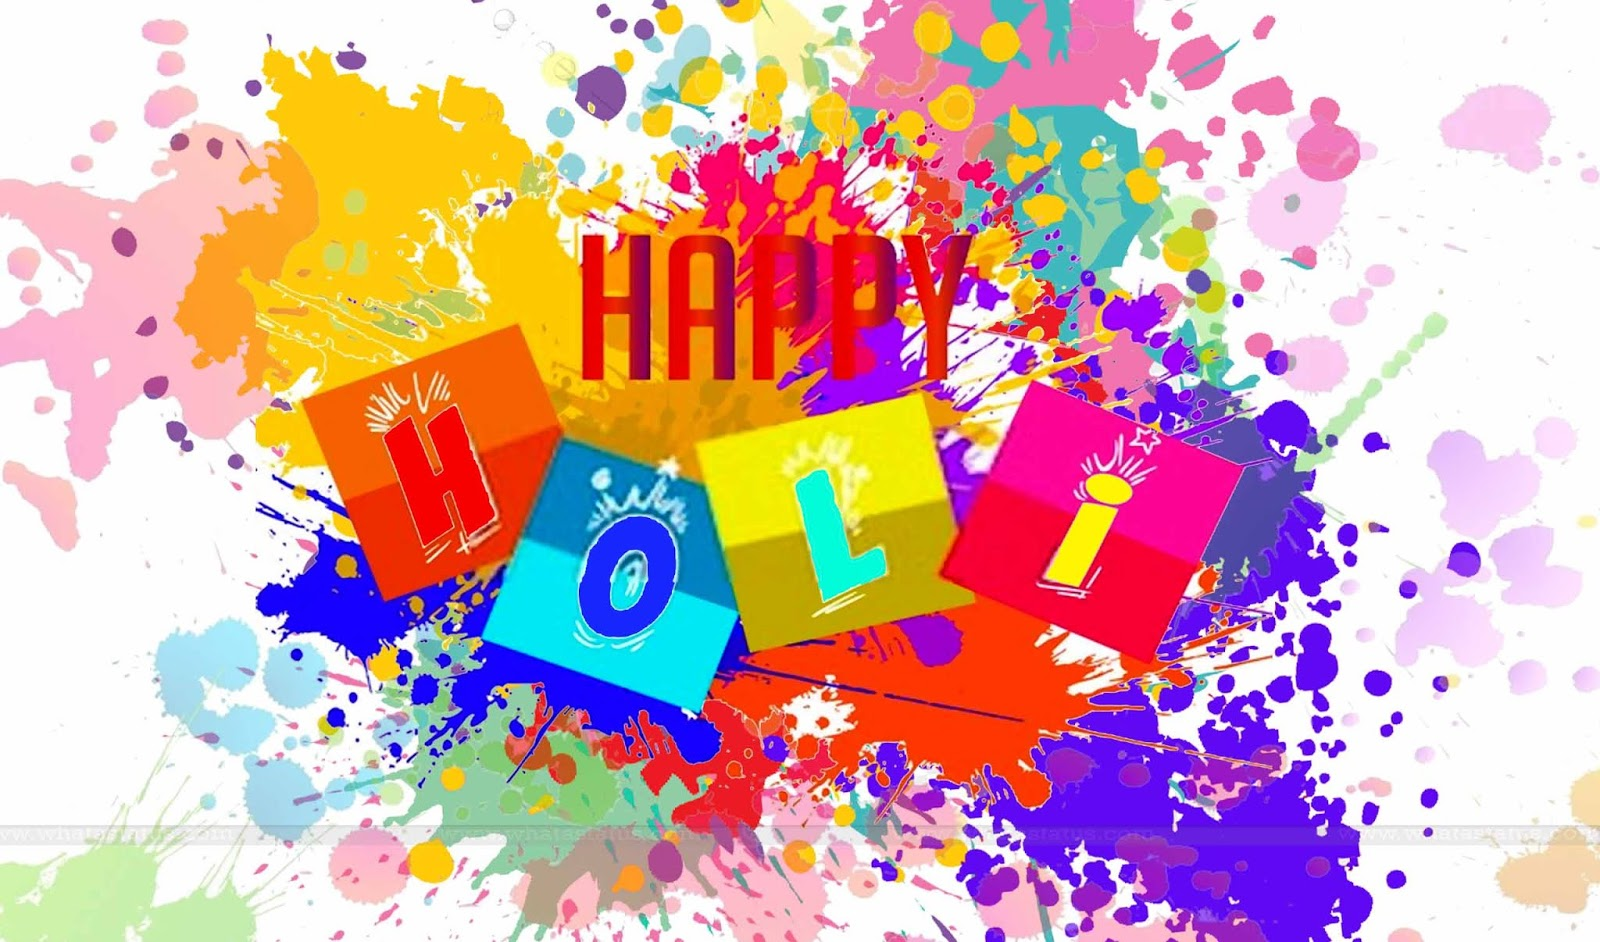 Hppy-holi-mix-colours